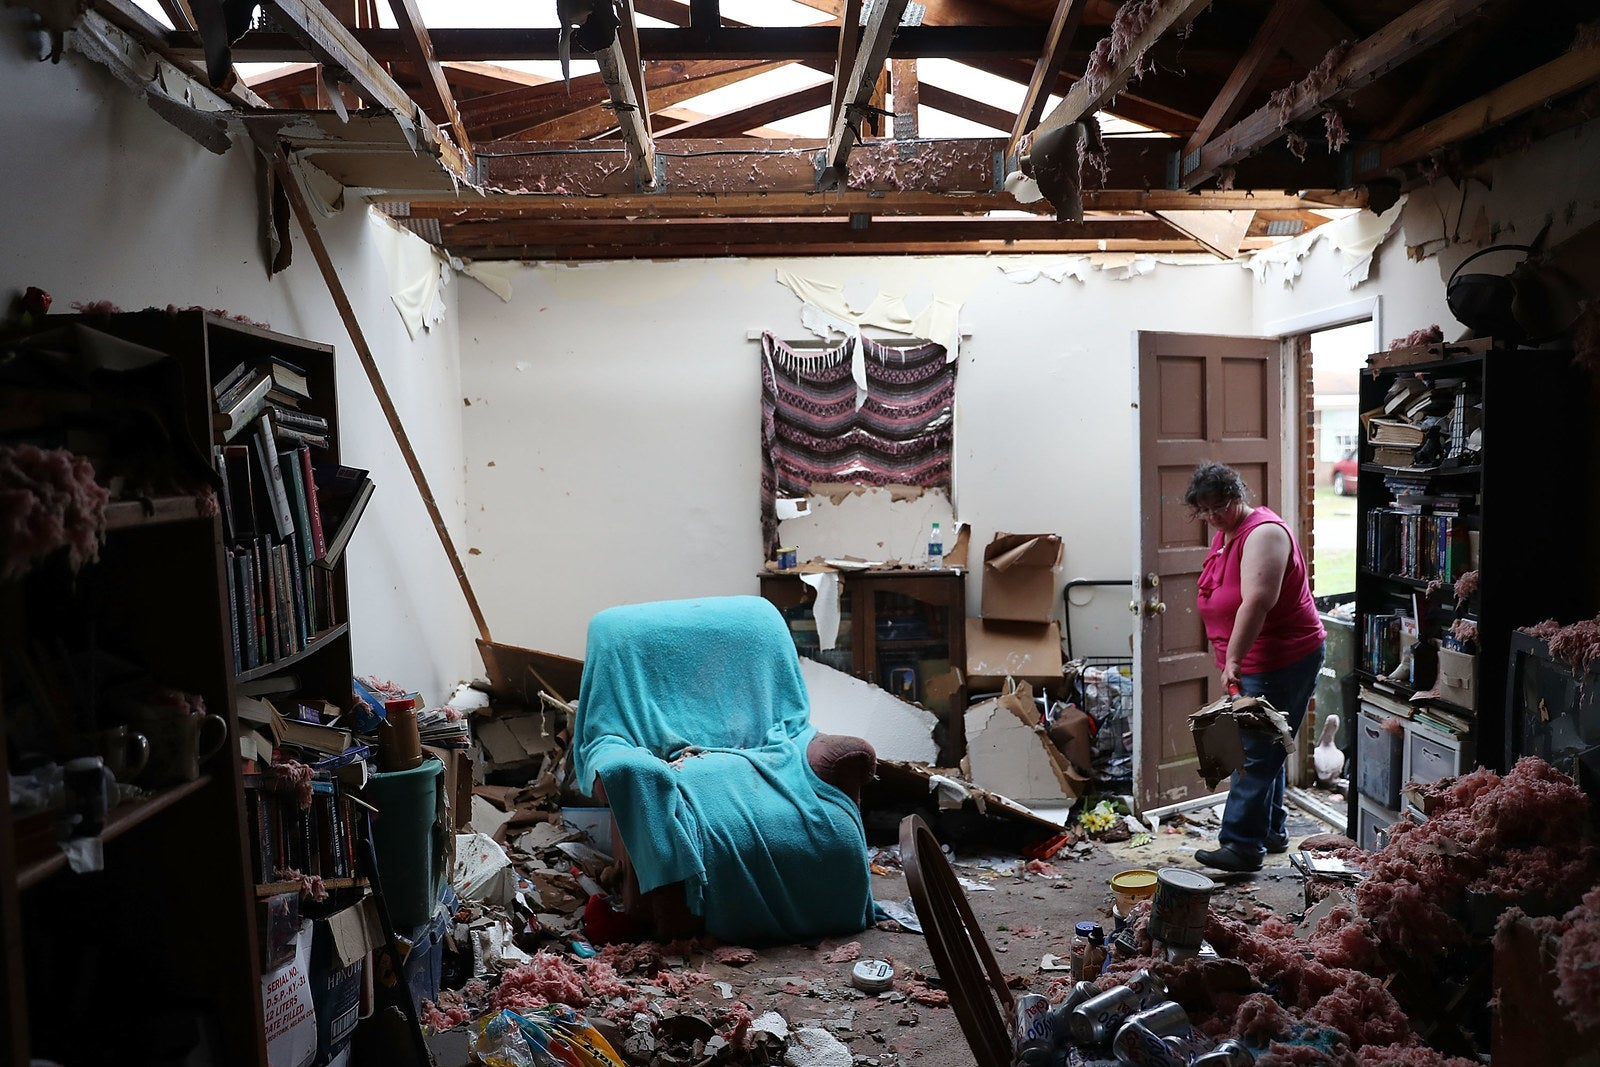 Amanda Logsdon begins the process of trying to clean up her home after its roof was blown off by Hurricane Michael on Oct. 11 in Panama City.